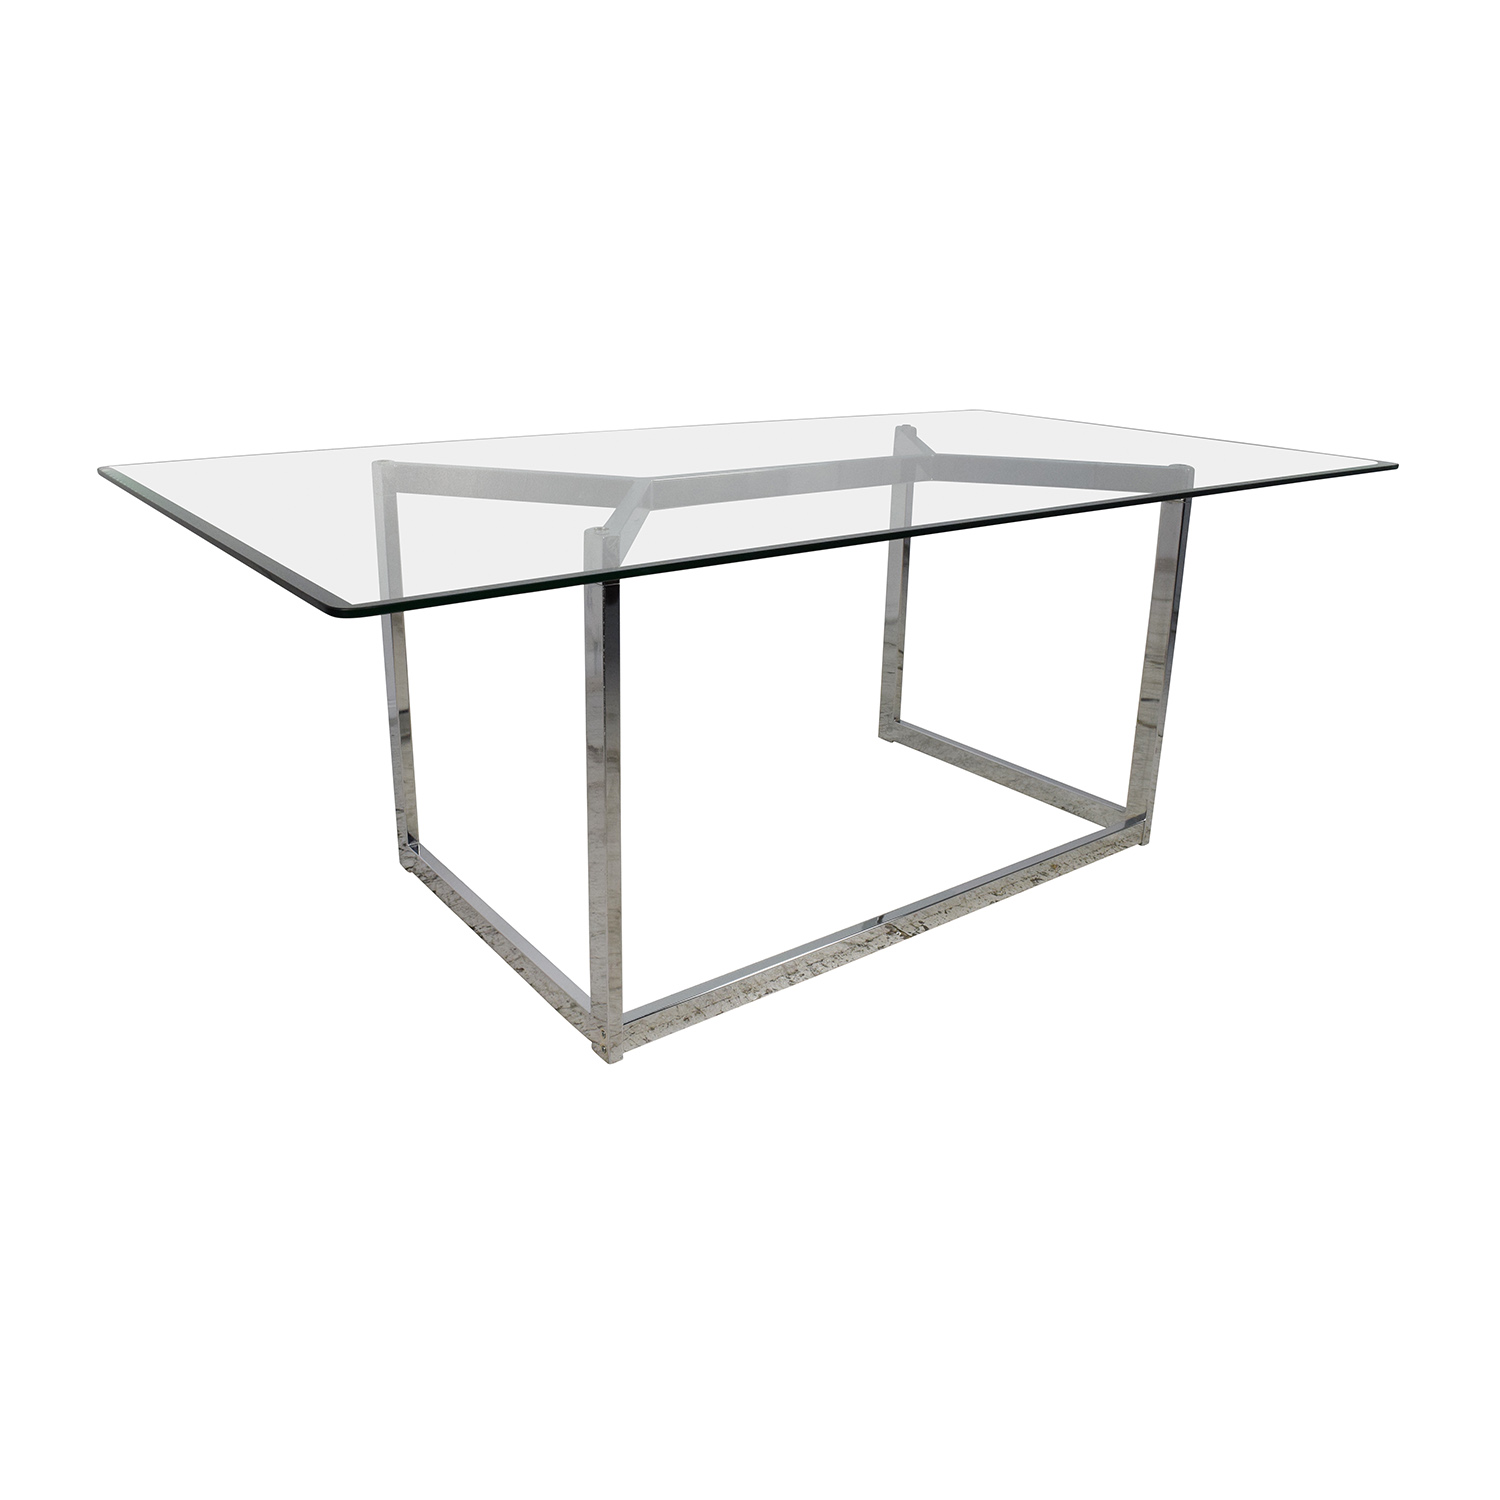 30% OFF CB2 CB2 Tesso Chrome and Glass Dining Table Tables